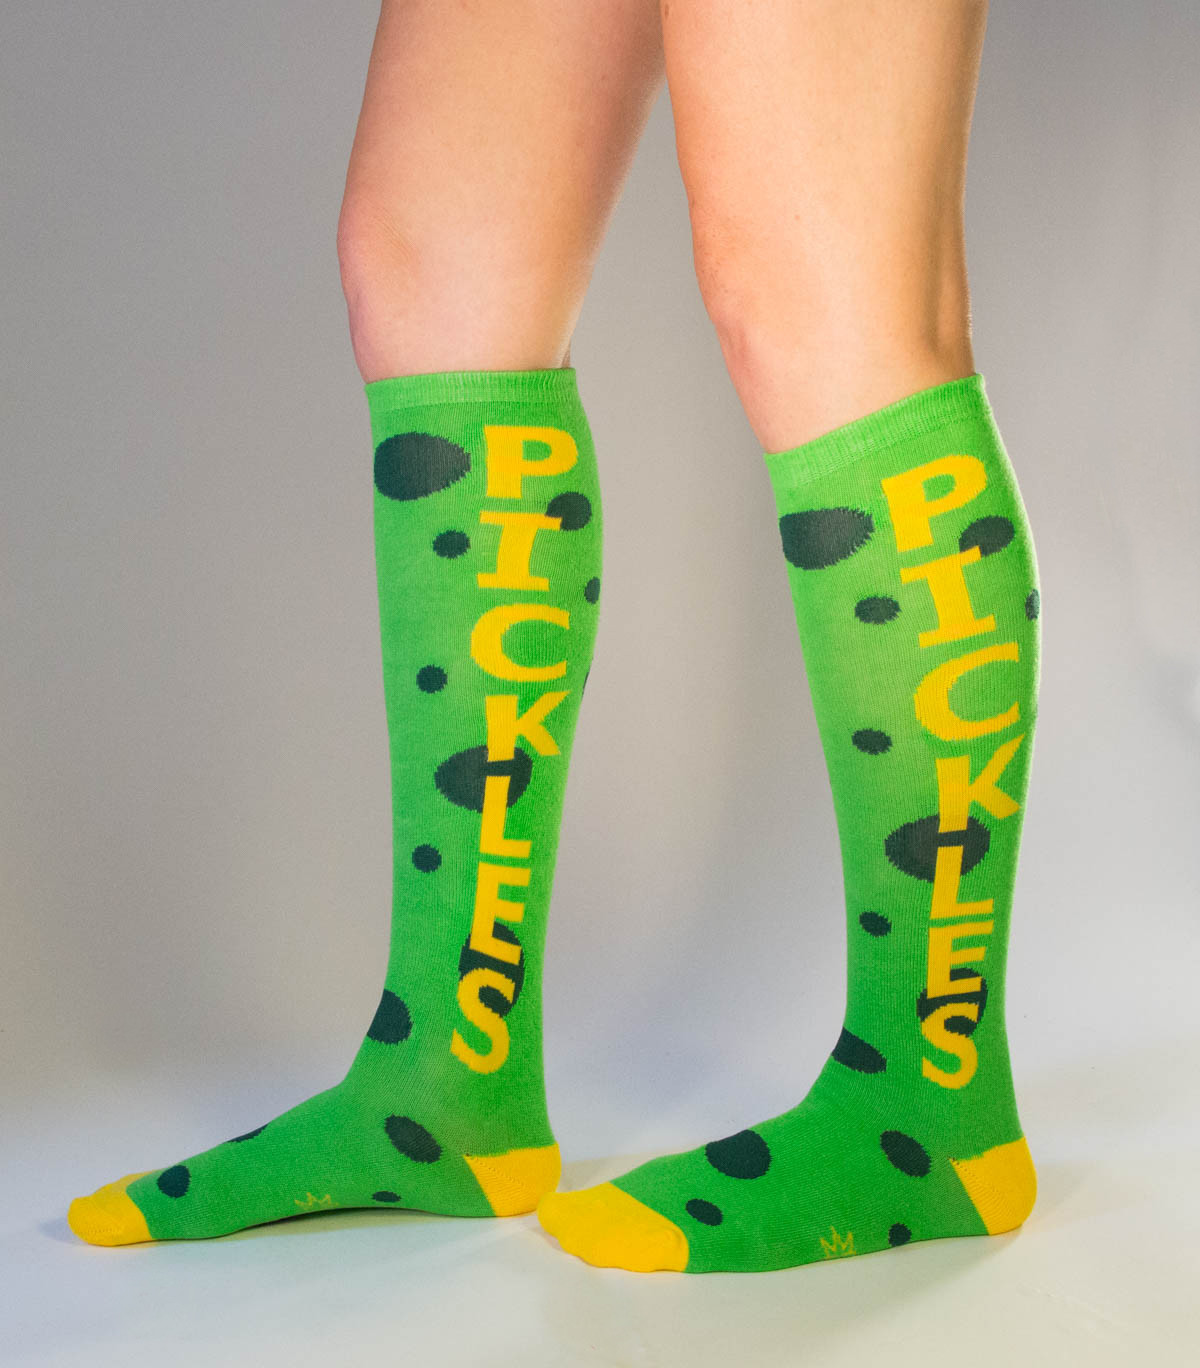 Pickles Socks